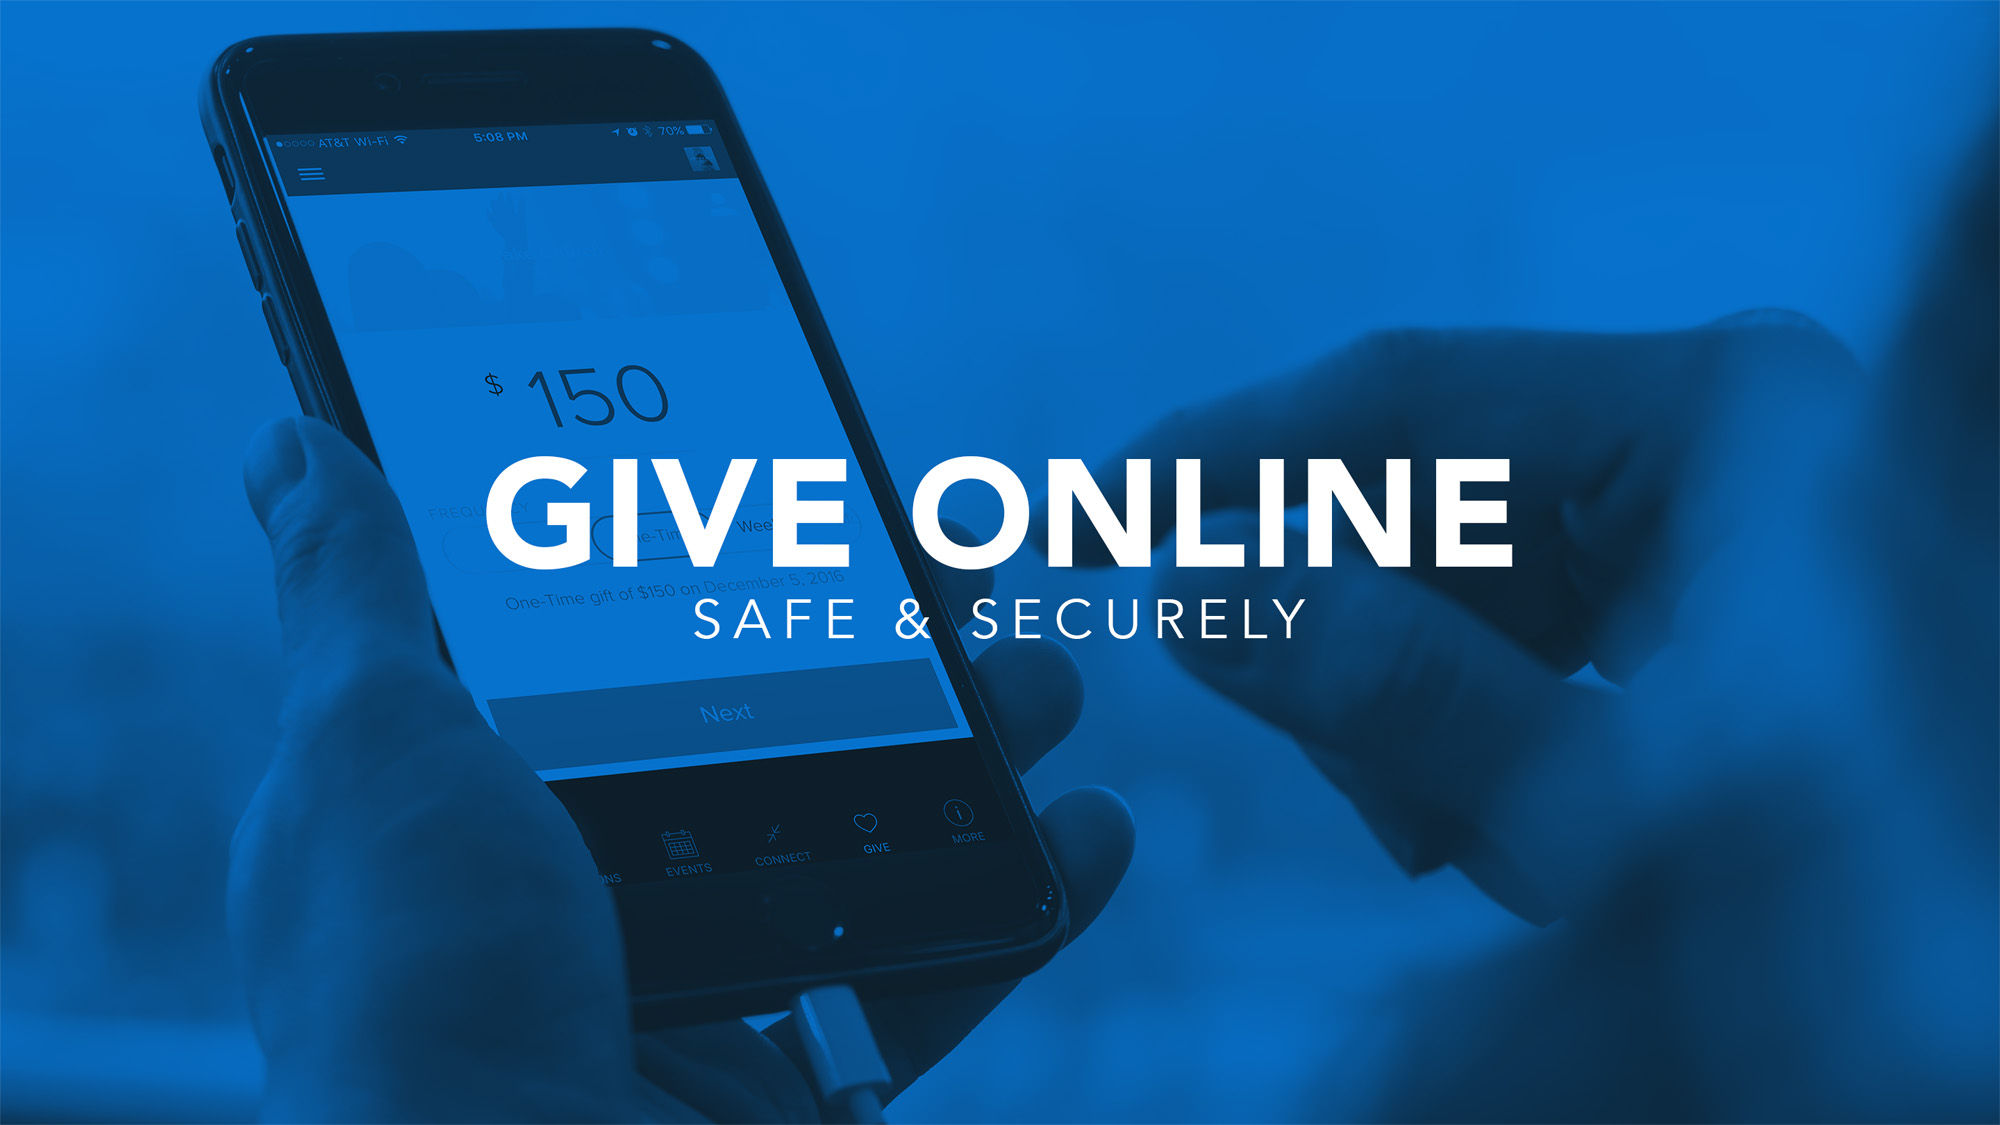 give_online-title-1-Wide 16x9.jpg